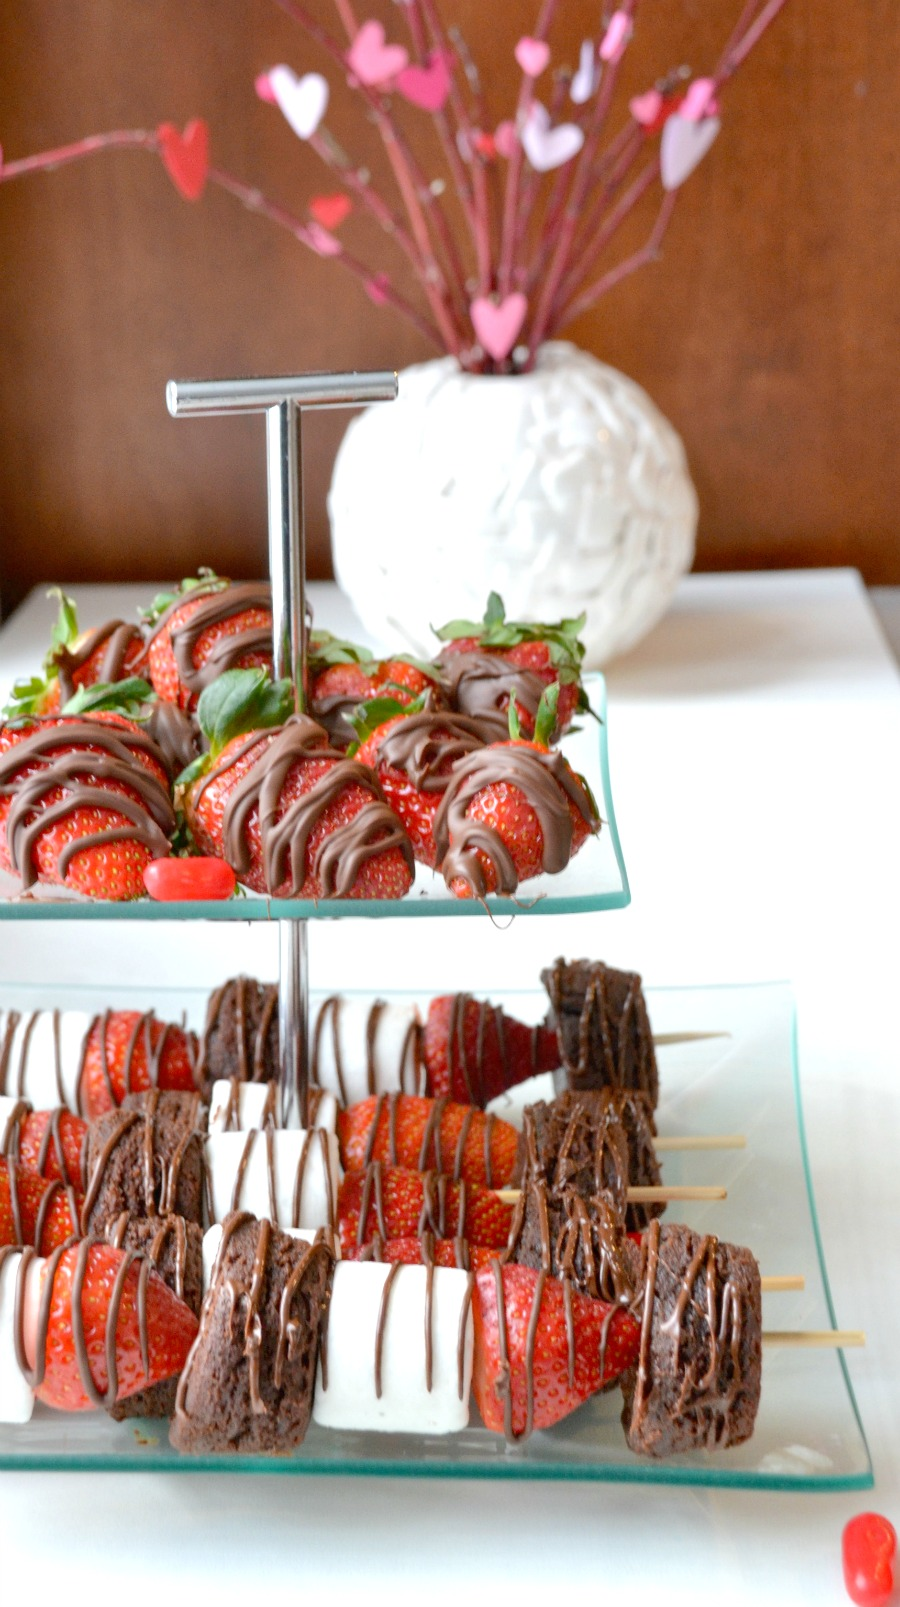 Strawberry brownie kebabs, strawberry dessert skewers, strawberry brownie skewers, class treats, Valentine's treats